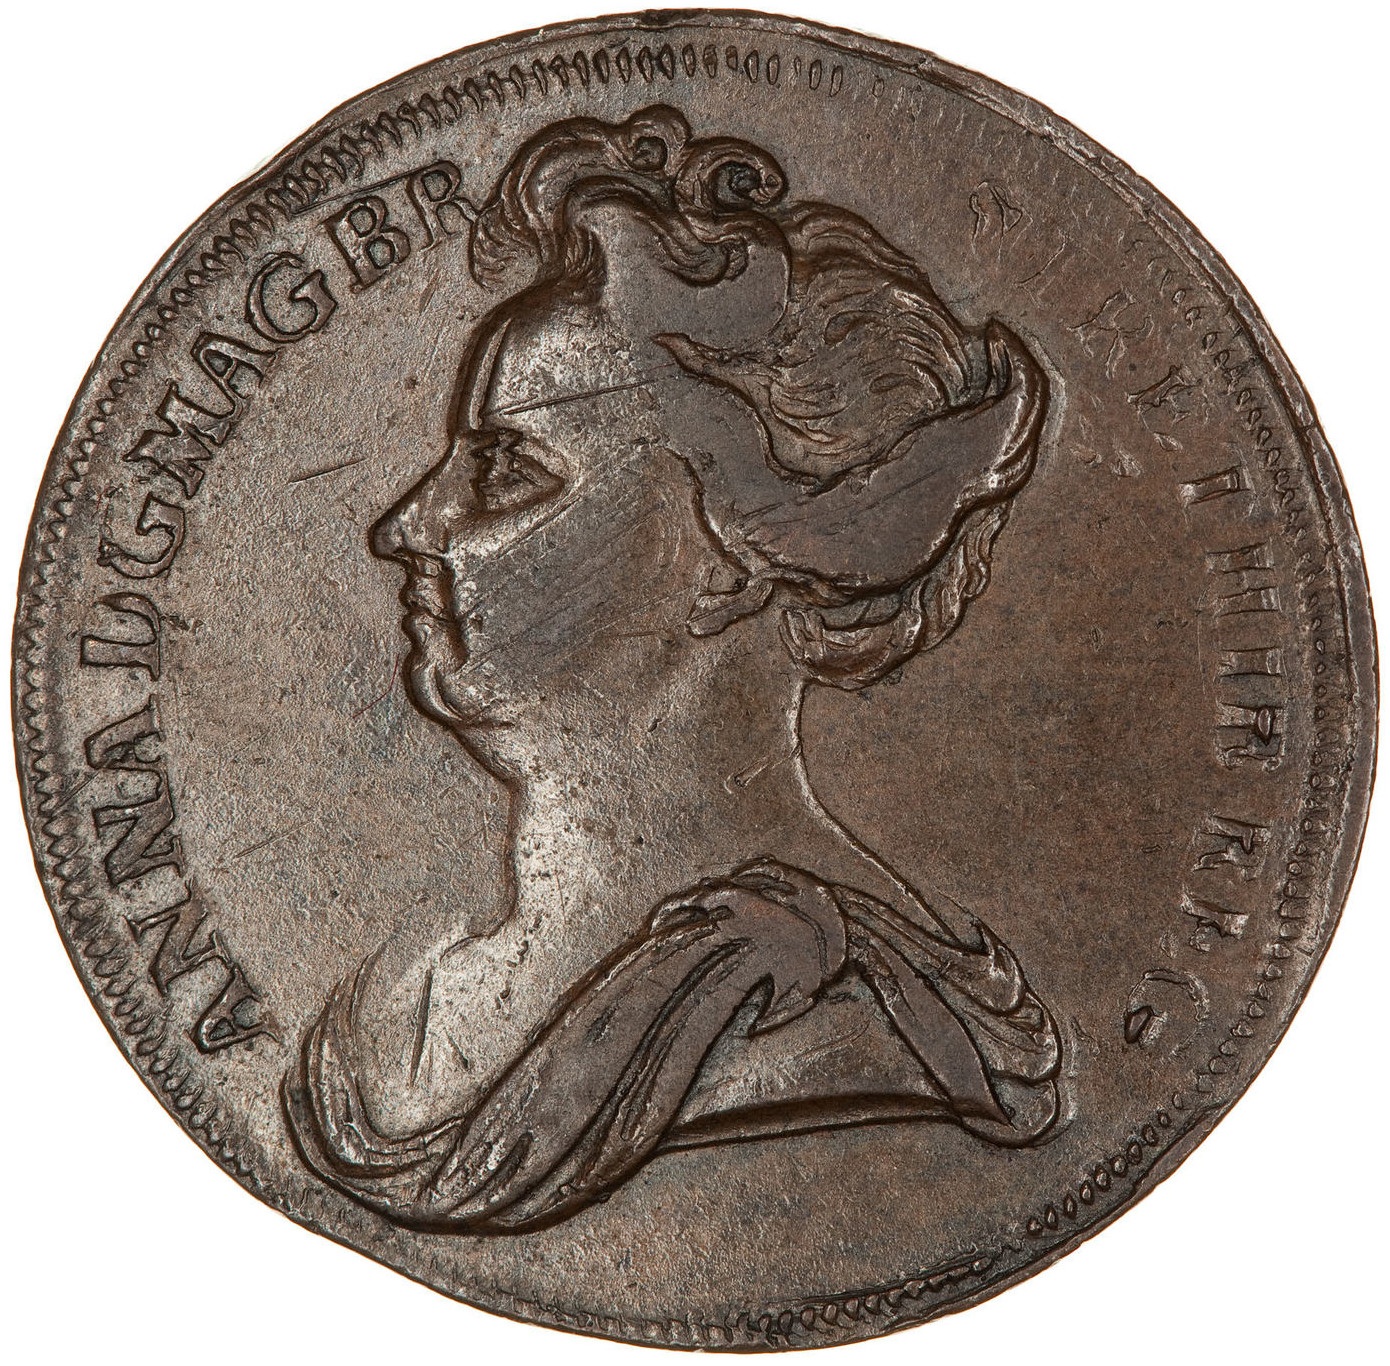 Halfpenny (Pattern): Photo Pattern Coin - Halfpenny, Queen Anne, England, Great Britain, 1707-1714